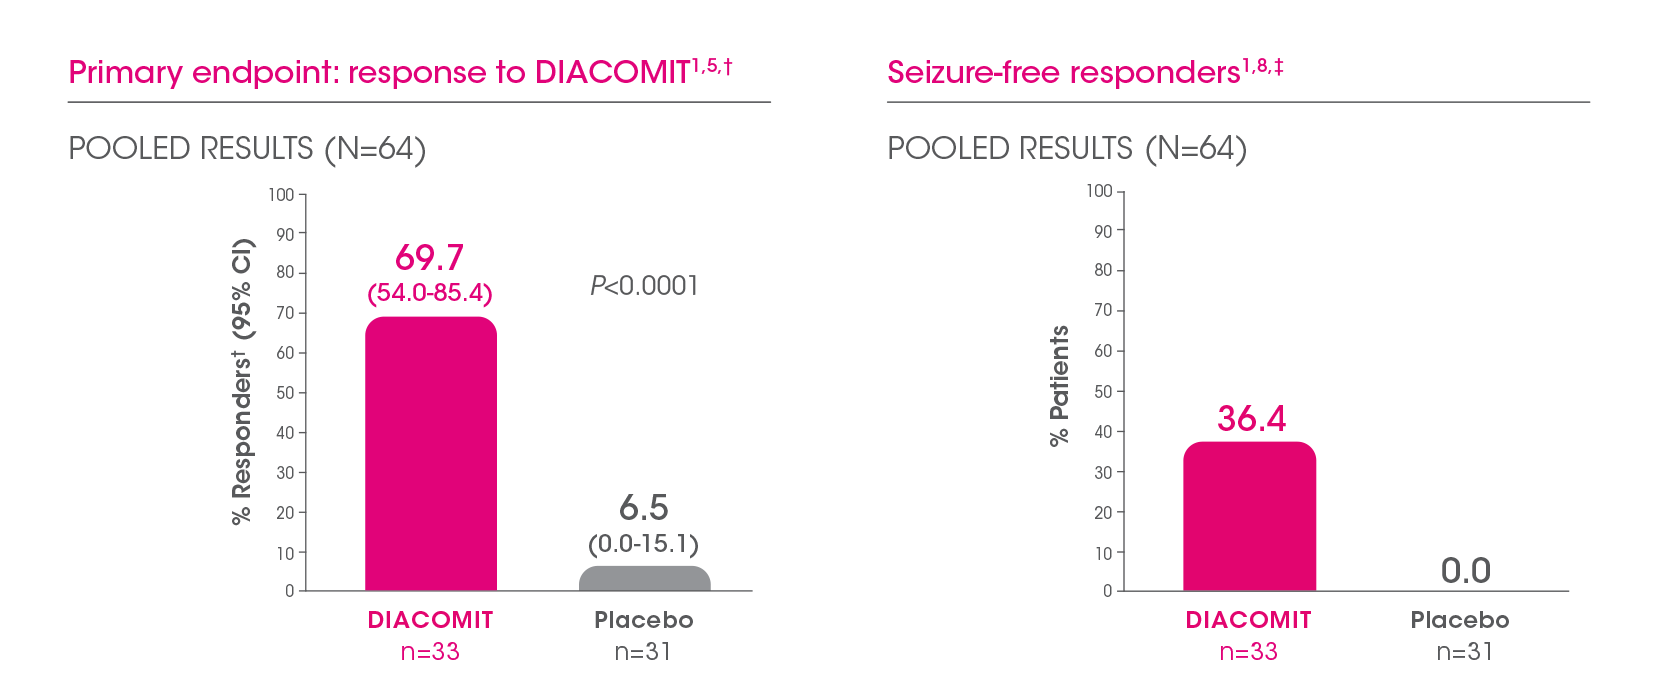 DIACOMIT offers an opportunity to significantly reduce seizure frequency